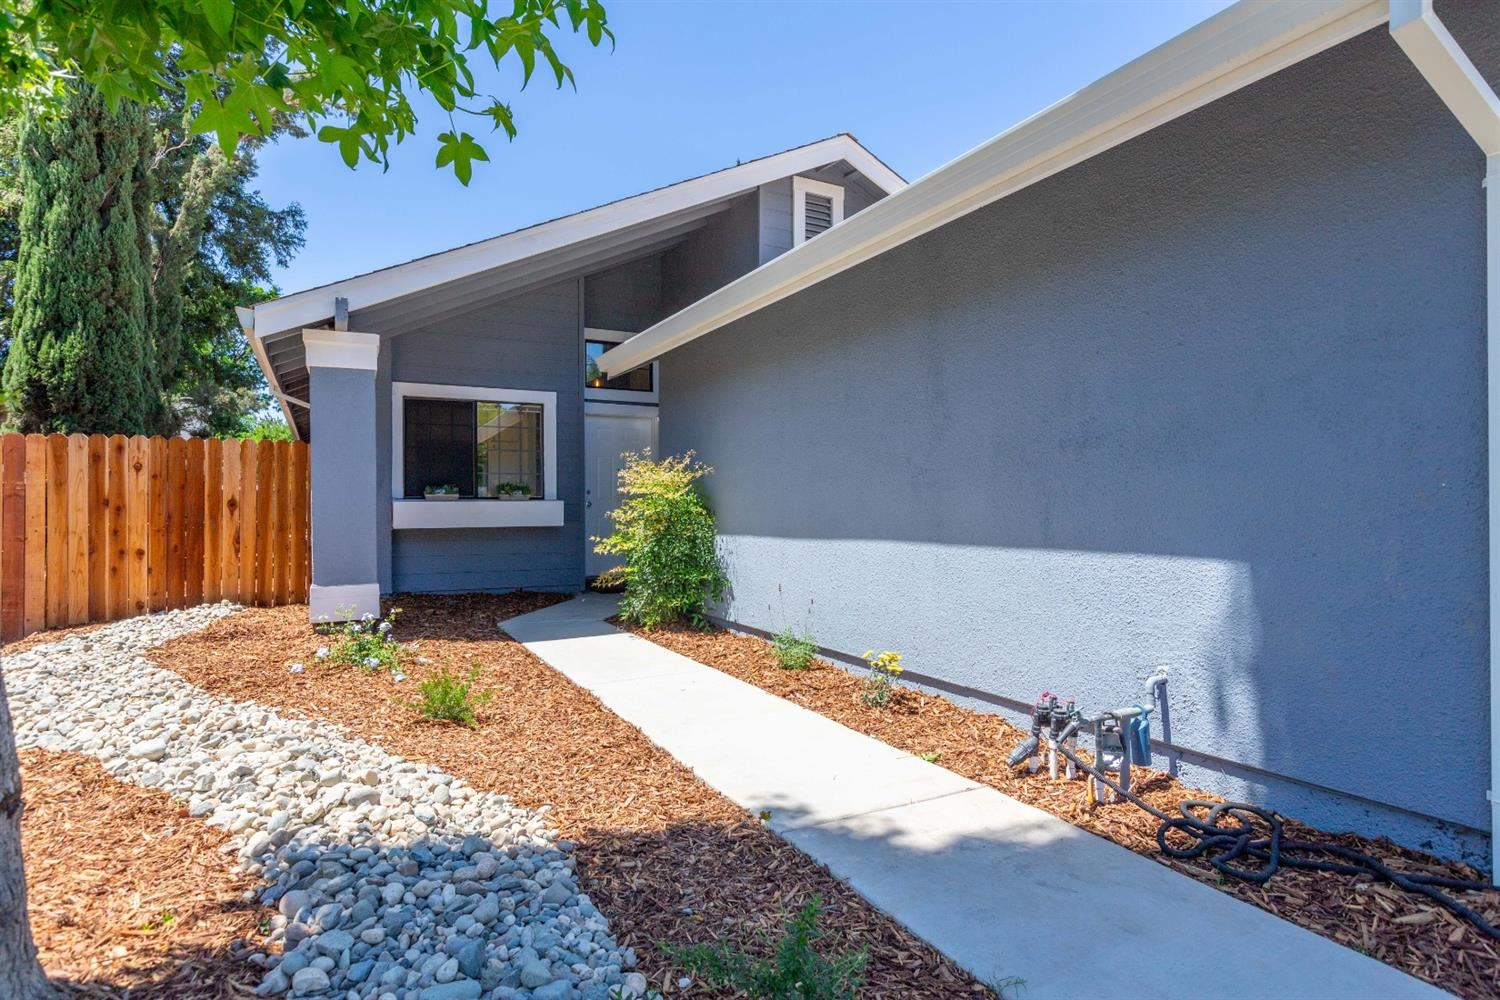 Photo of 3597 Rio Rosa Way, Sacramento, CA 95834 (MLS # 221049832)